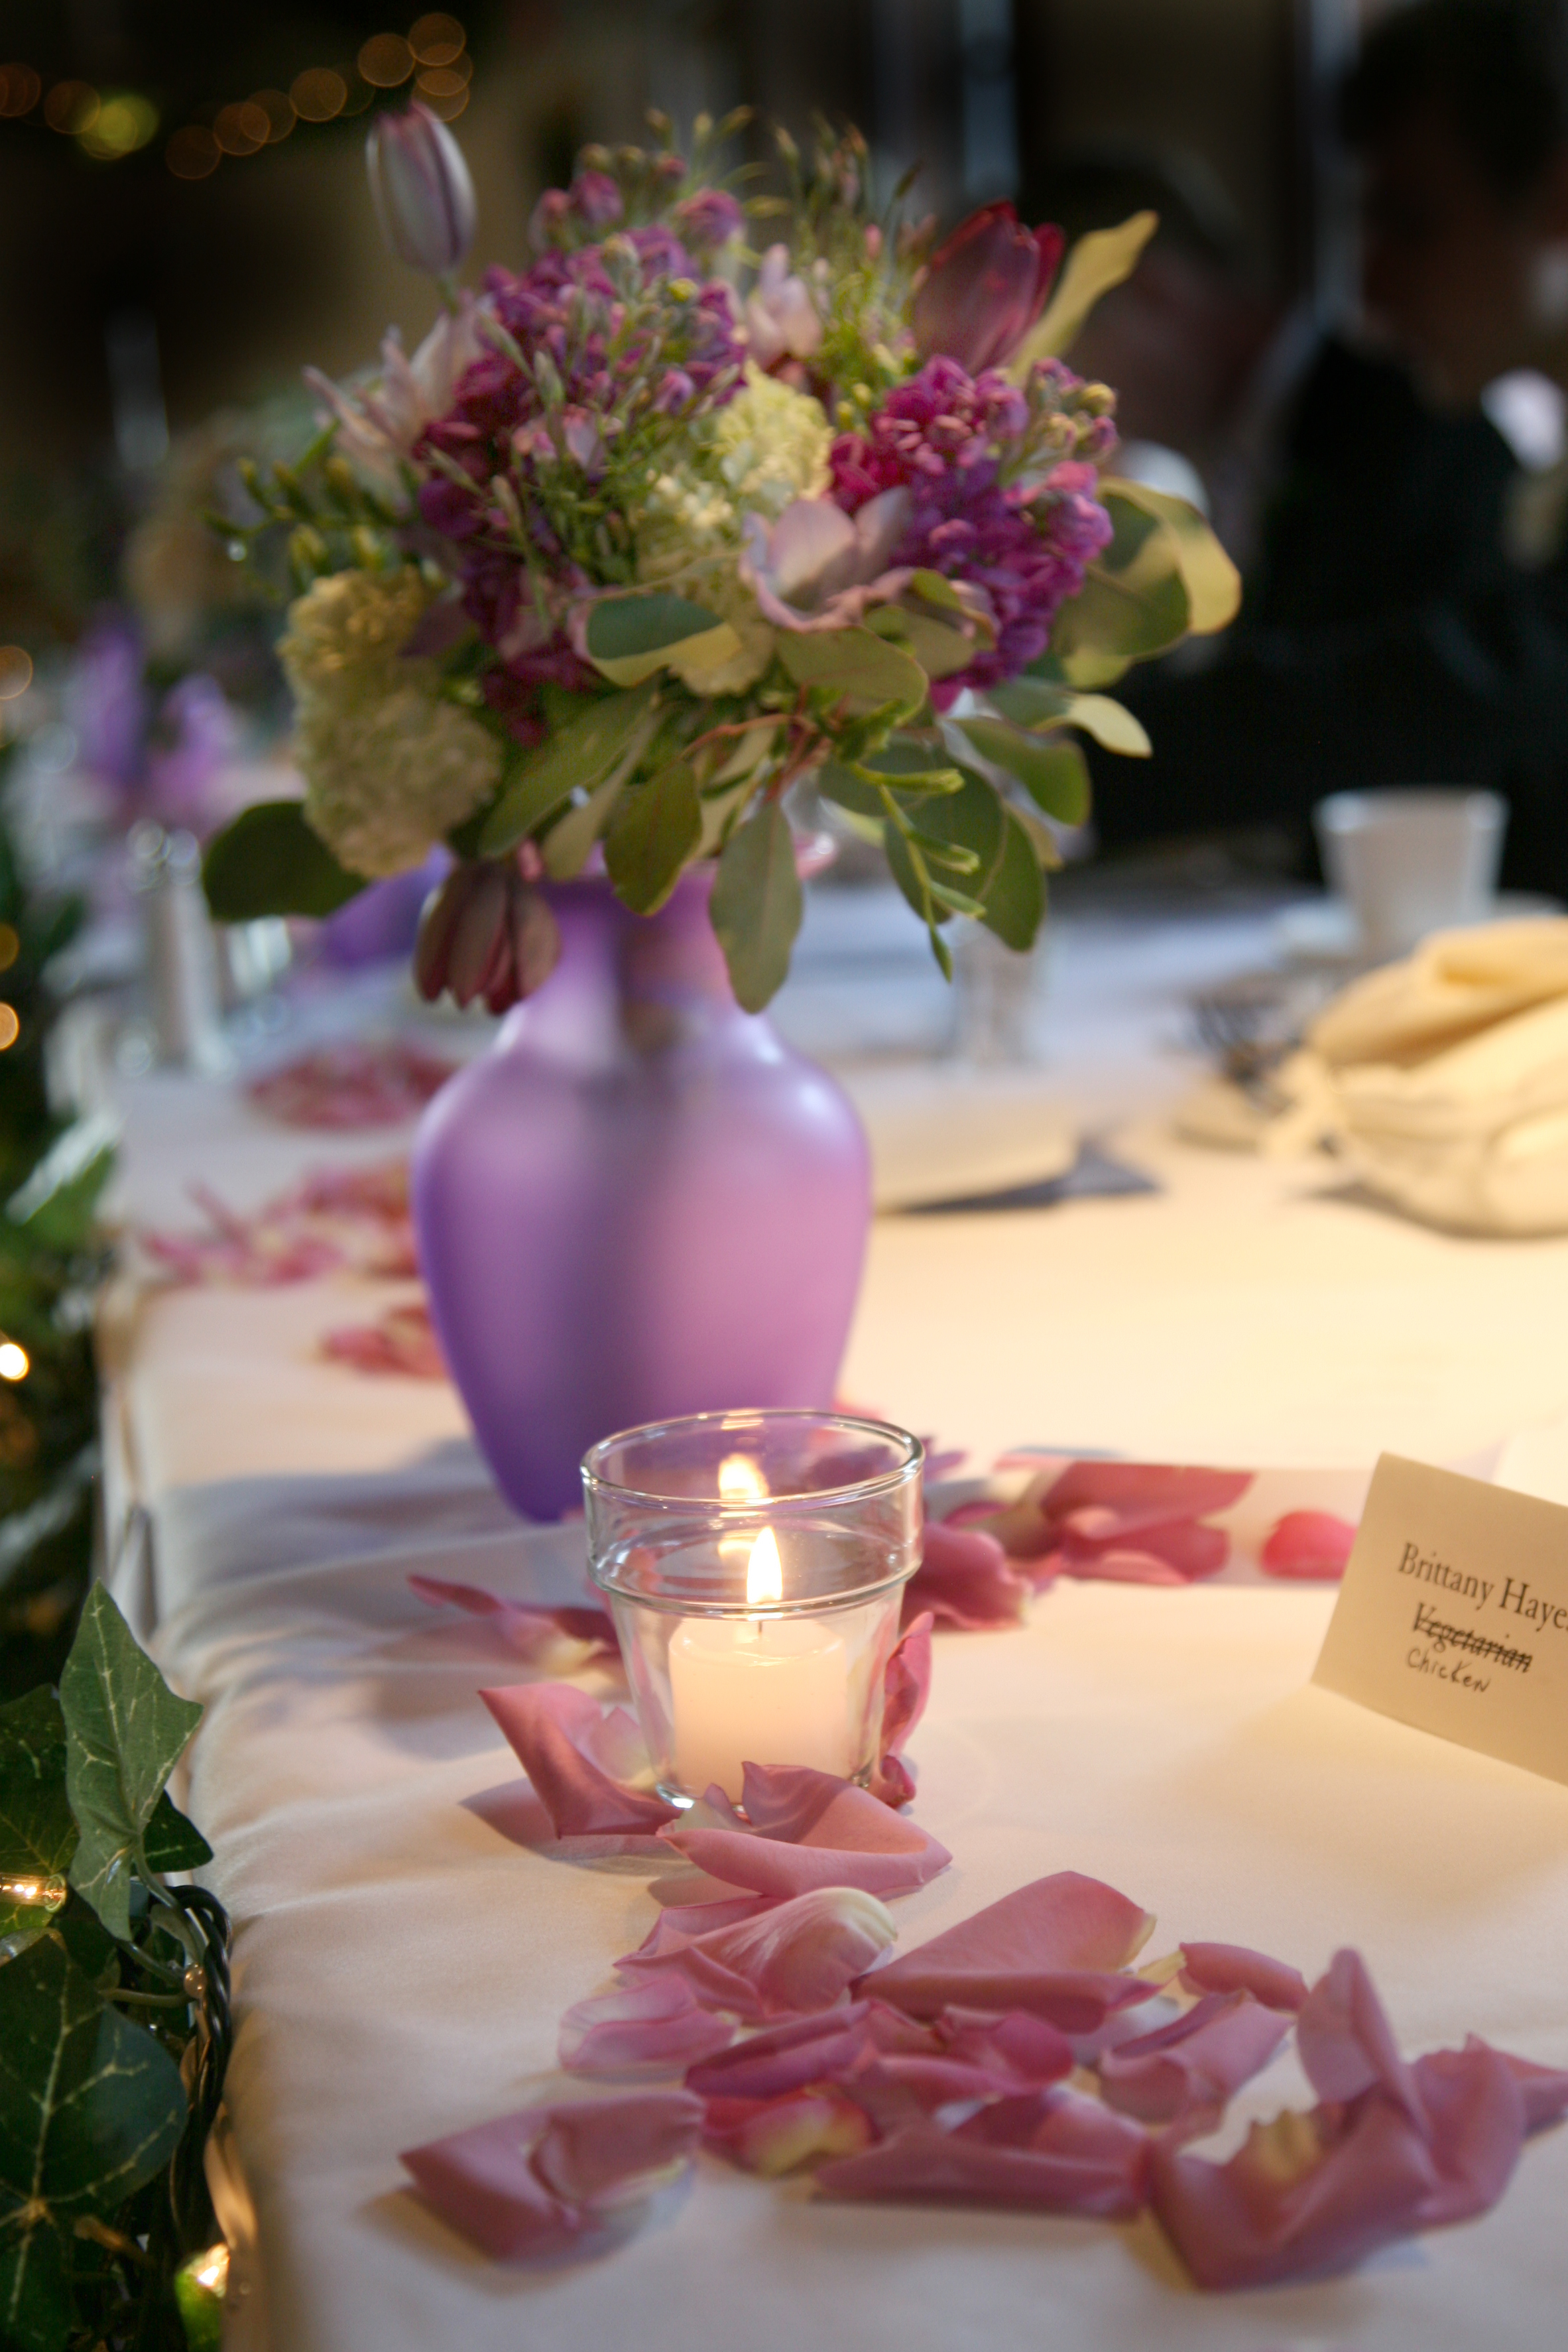 The head table with the bridesmaid bouquet